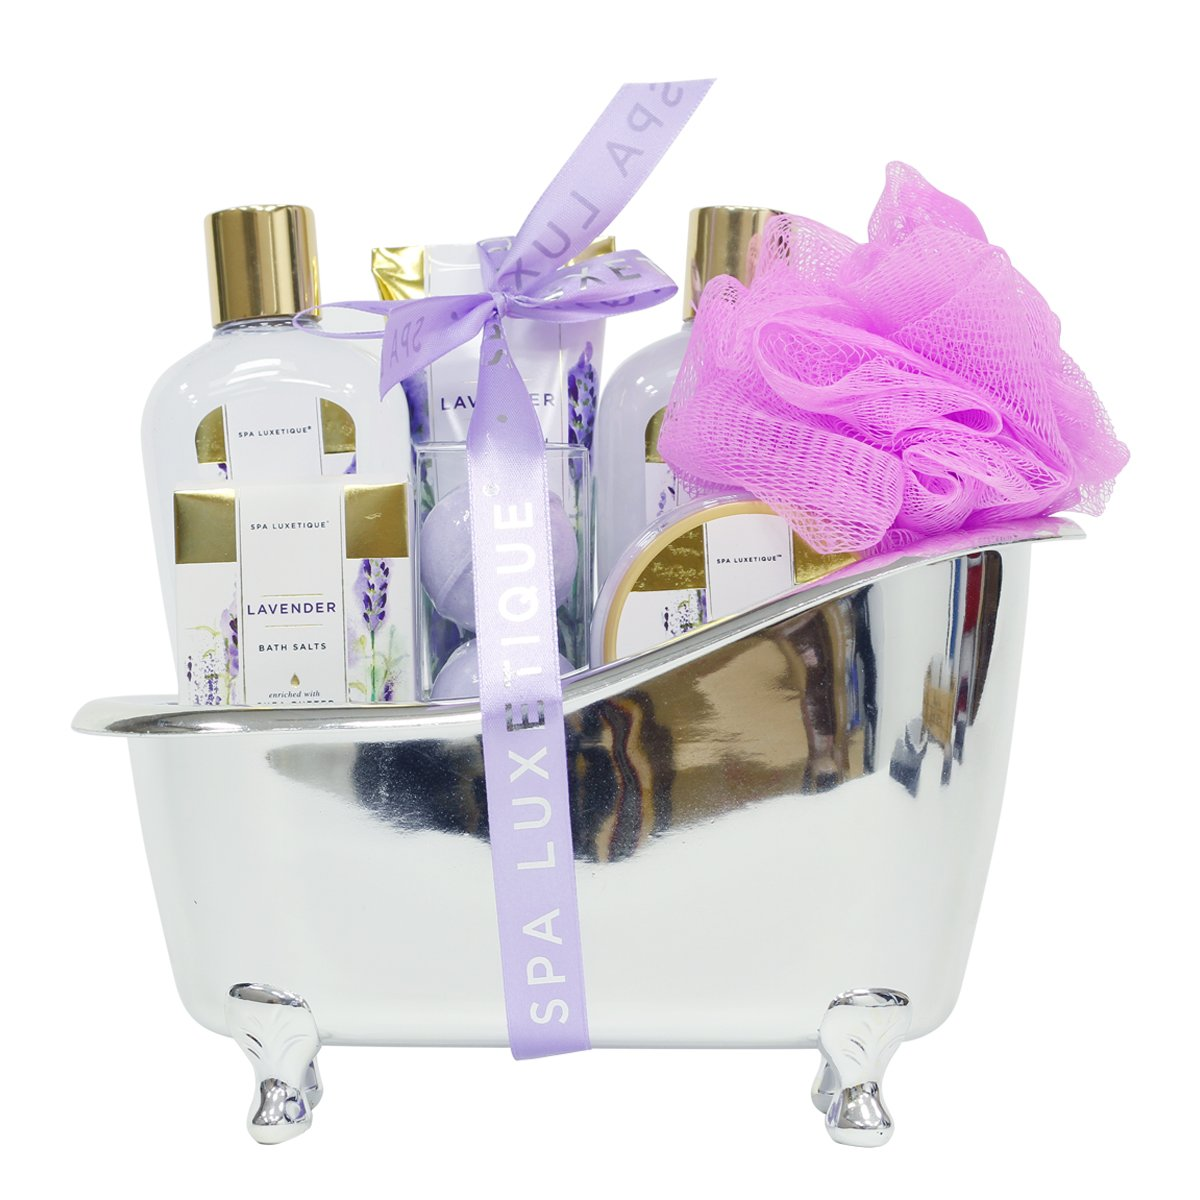 Spa Luxetique Lavender Bath Gift Set in Silver Bath Tub, Deluxe 8 pc Bath&Body Spa Treatment for Women, Spa Gift Basket for Christmas, Birthday, Mother's Day, Valentine's Day